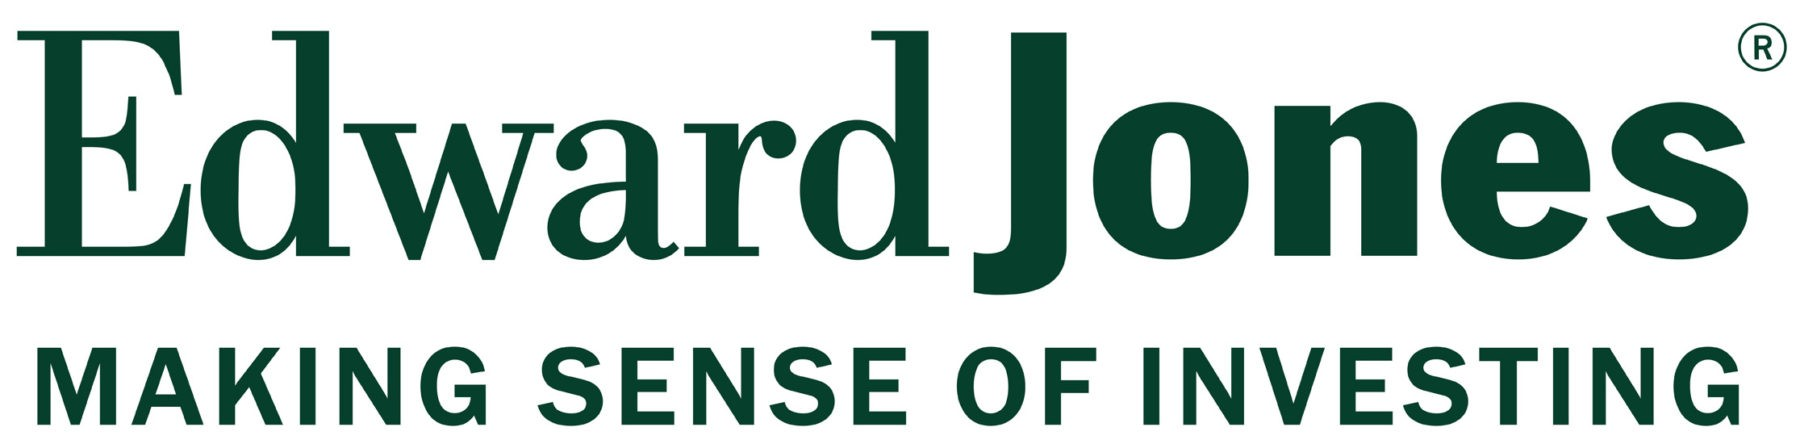 Edward Jones logo - Business in Manotick